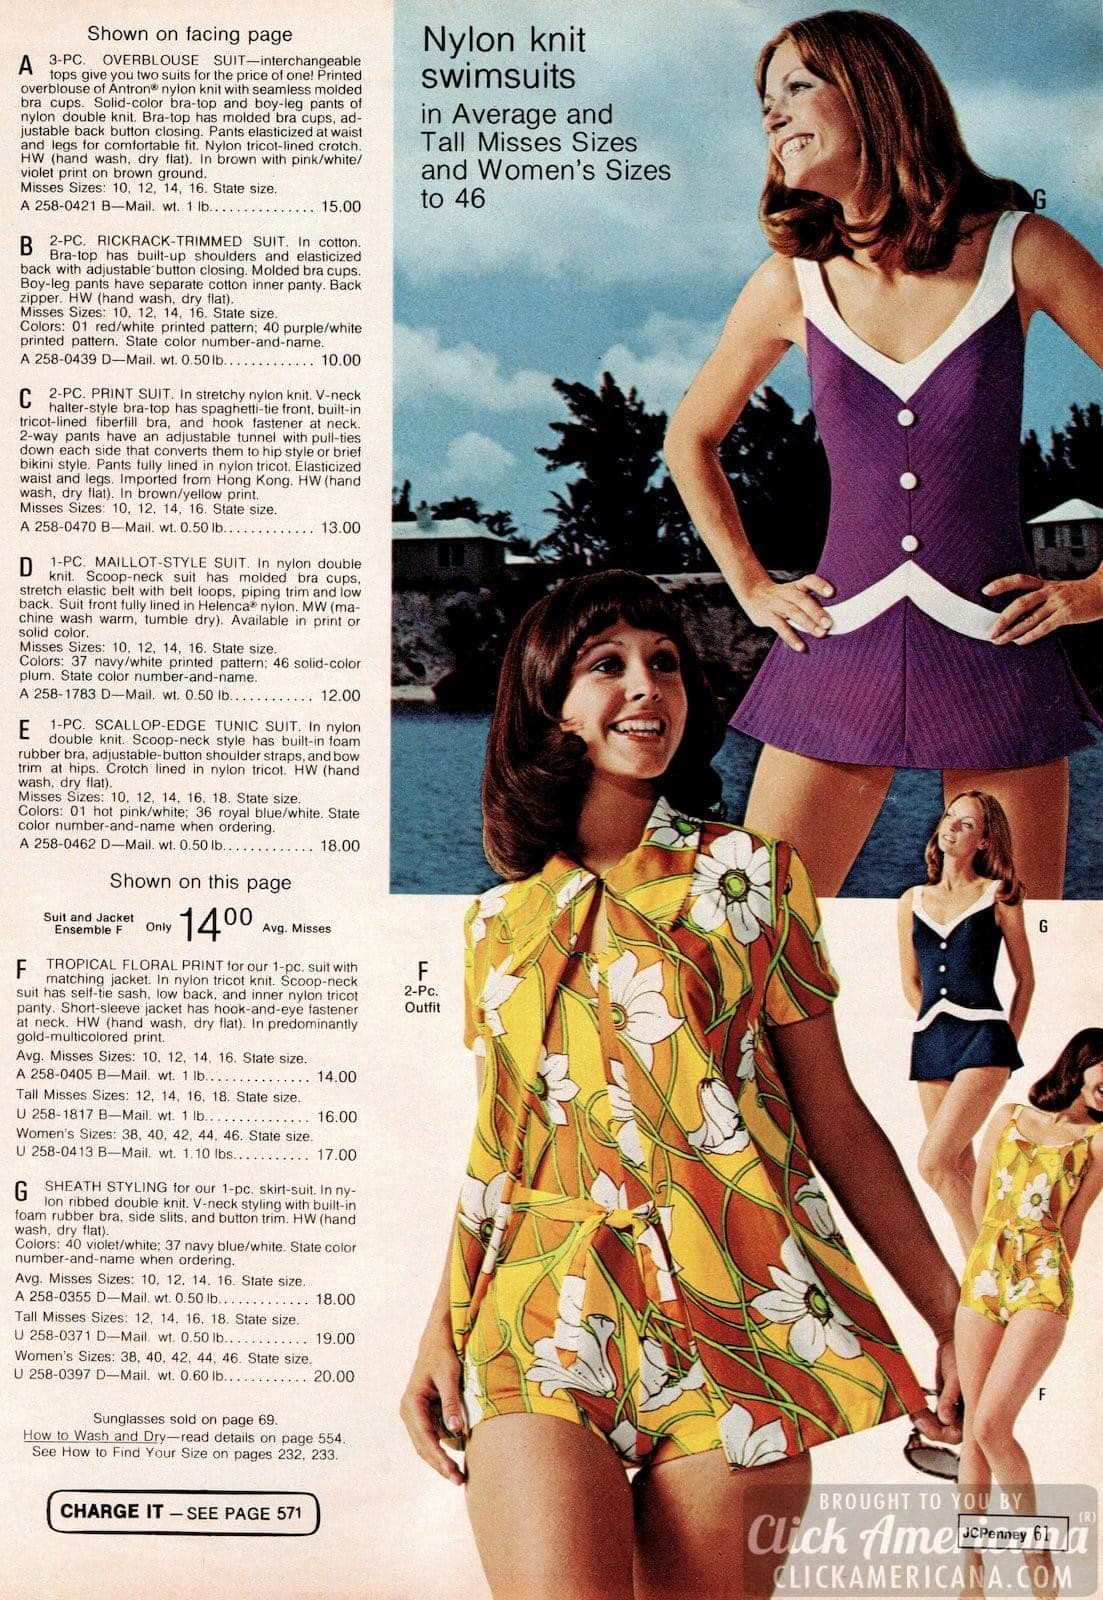 Vintage swimwear for women from 1973 (4)